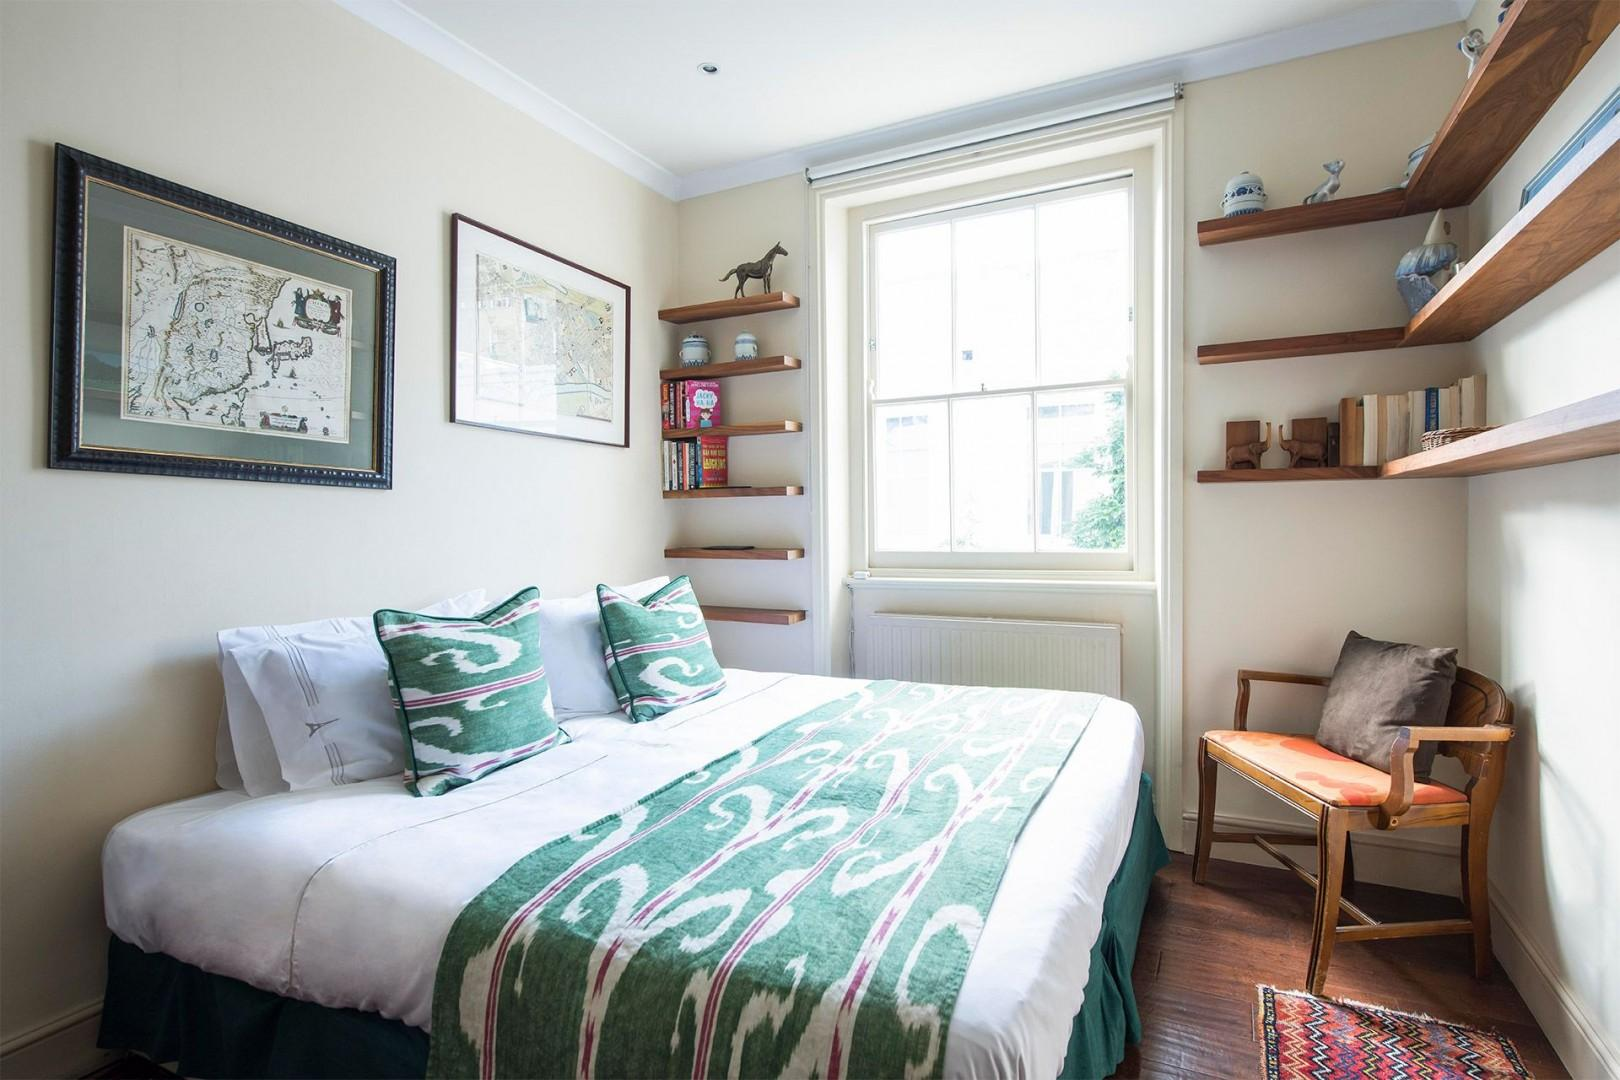 Homey touches in the second bedroom